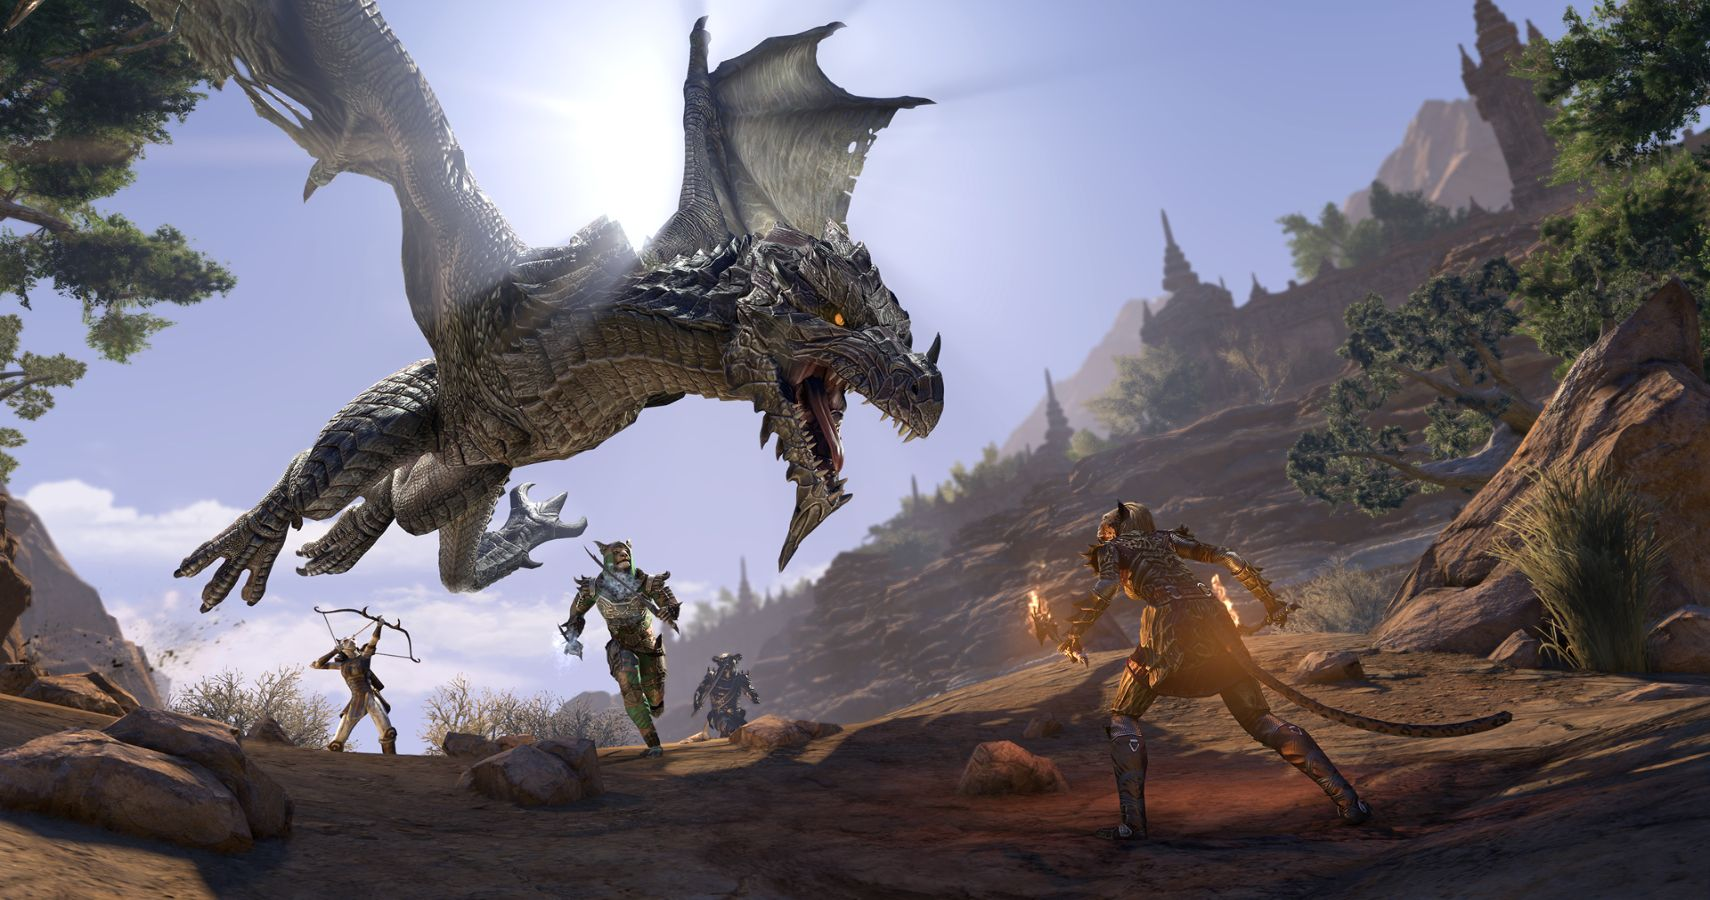 The Elder Scrolls Online: Elsweyr Arrives With Early Access And